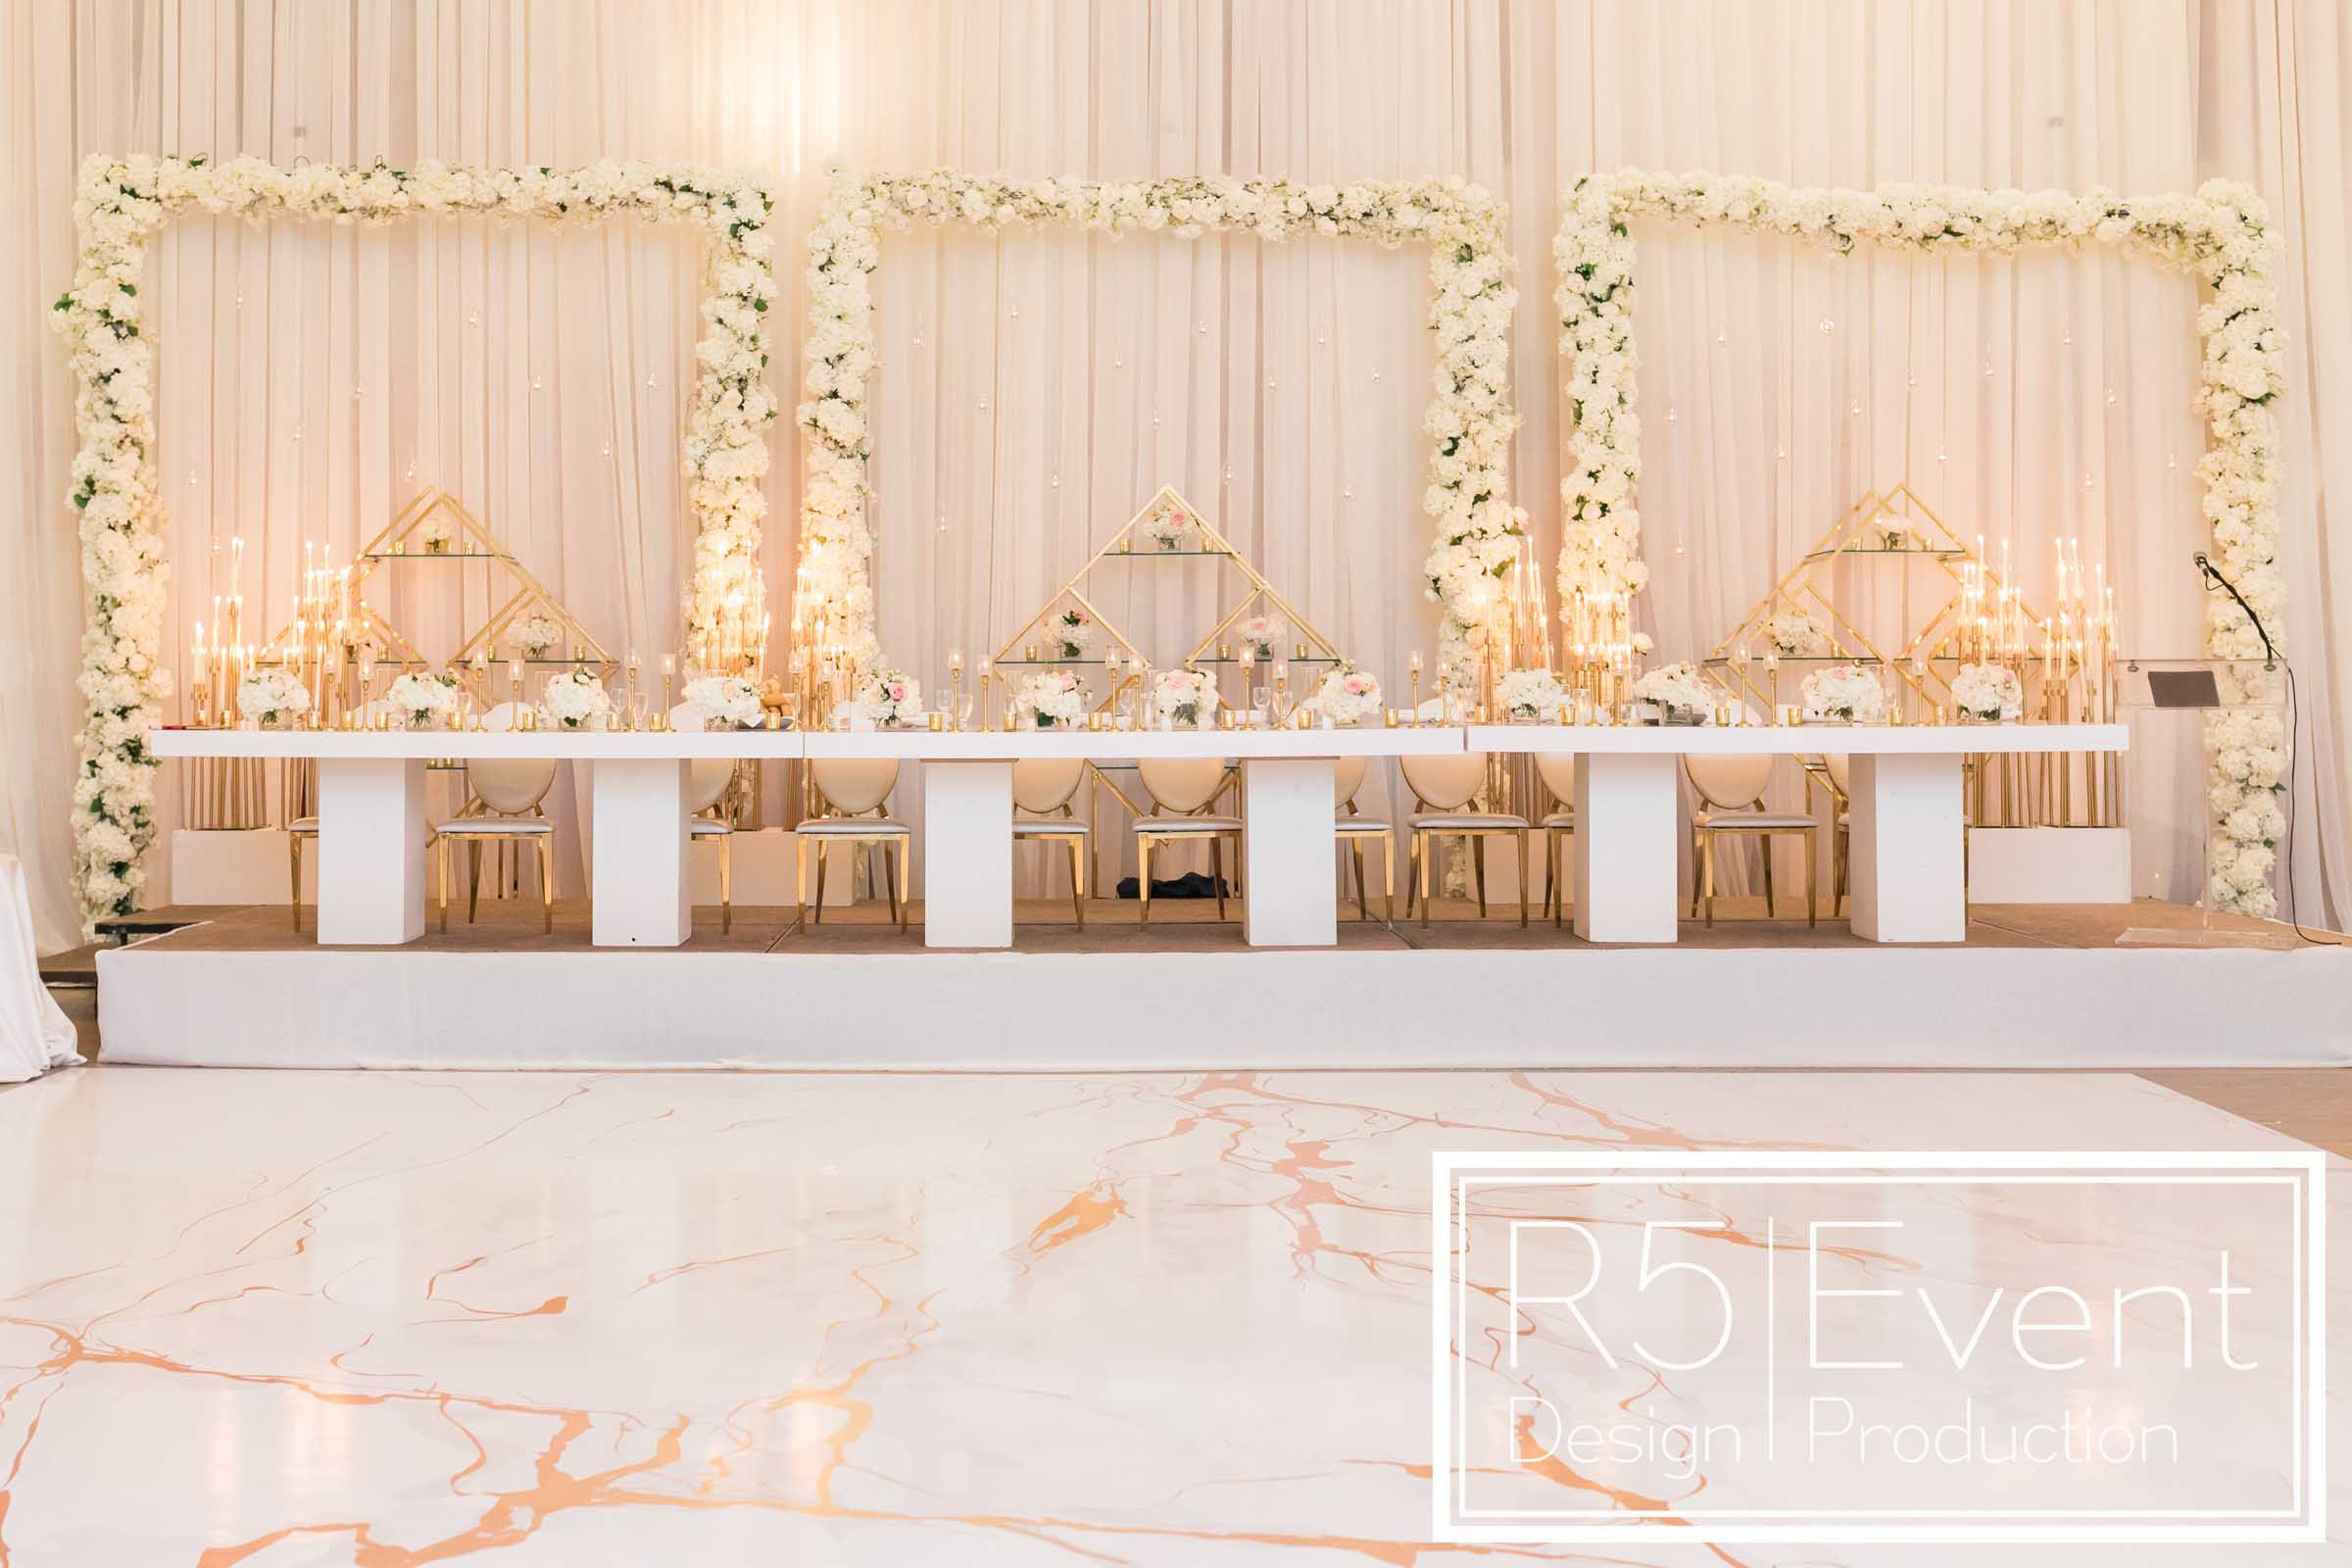 Incredible Headtable With Custom Backdrop Featuring Drapery Gold Accents Candles And F Corporate Events Decoration Event Design Corporate Event Design